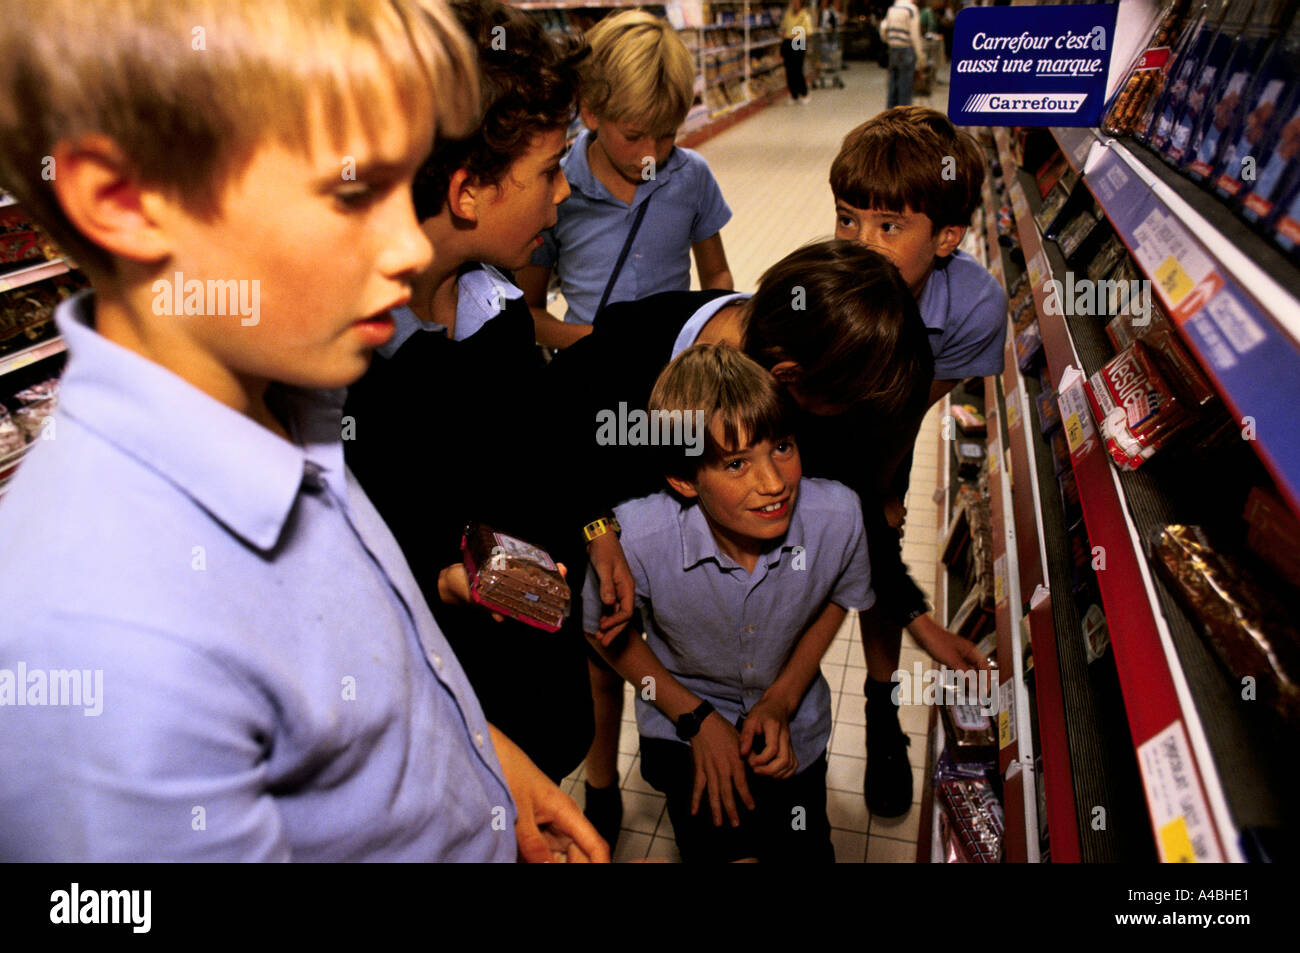 CHILDREN IN THE SUPERMARKET. The school has an annex at Saveterre Chateau near Toulouse, France Stock Photo